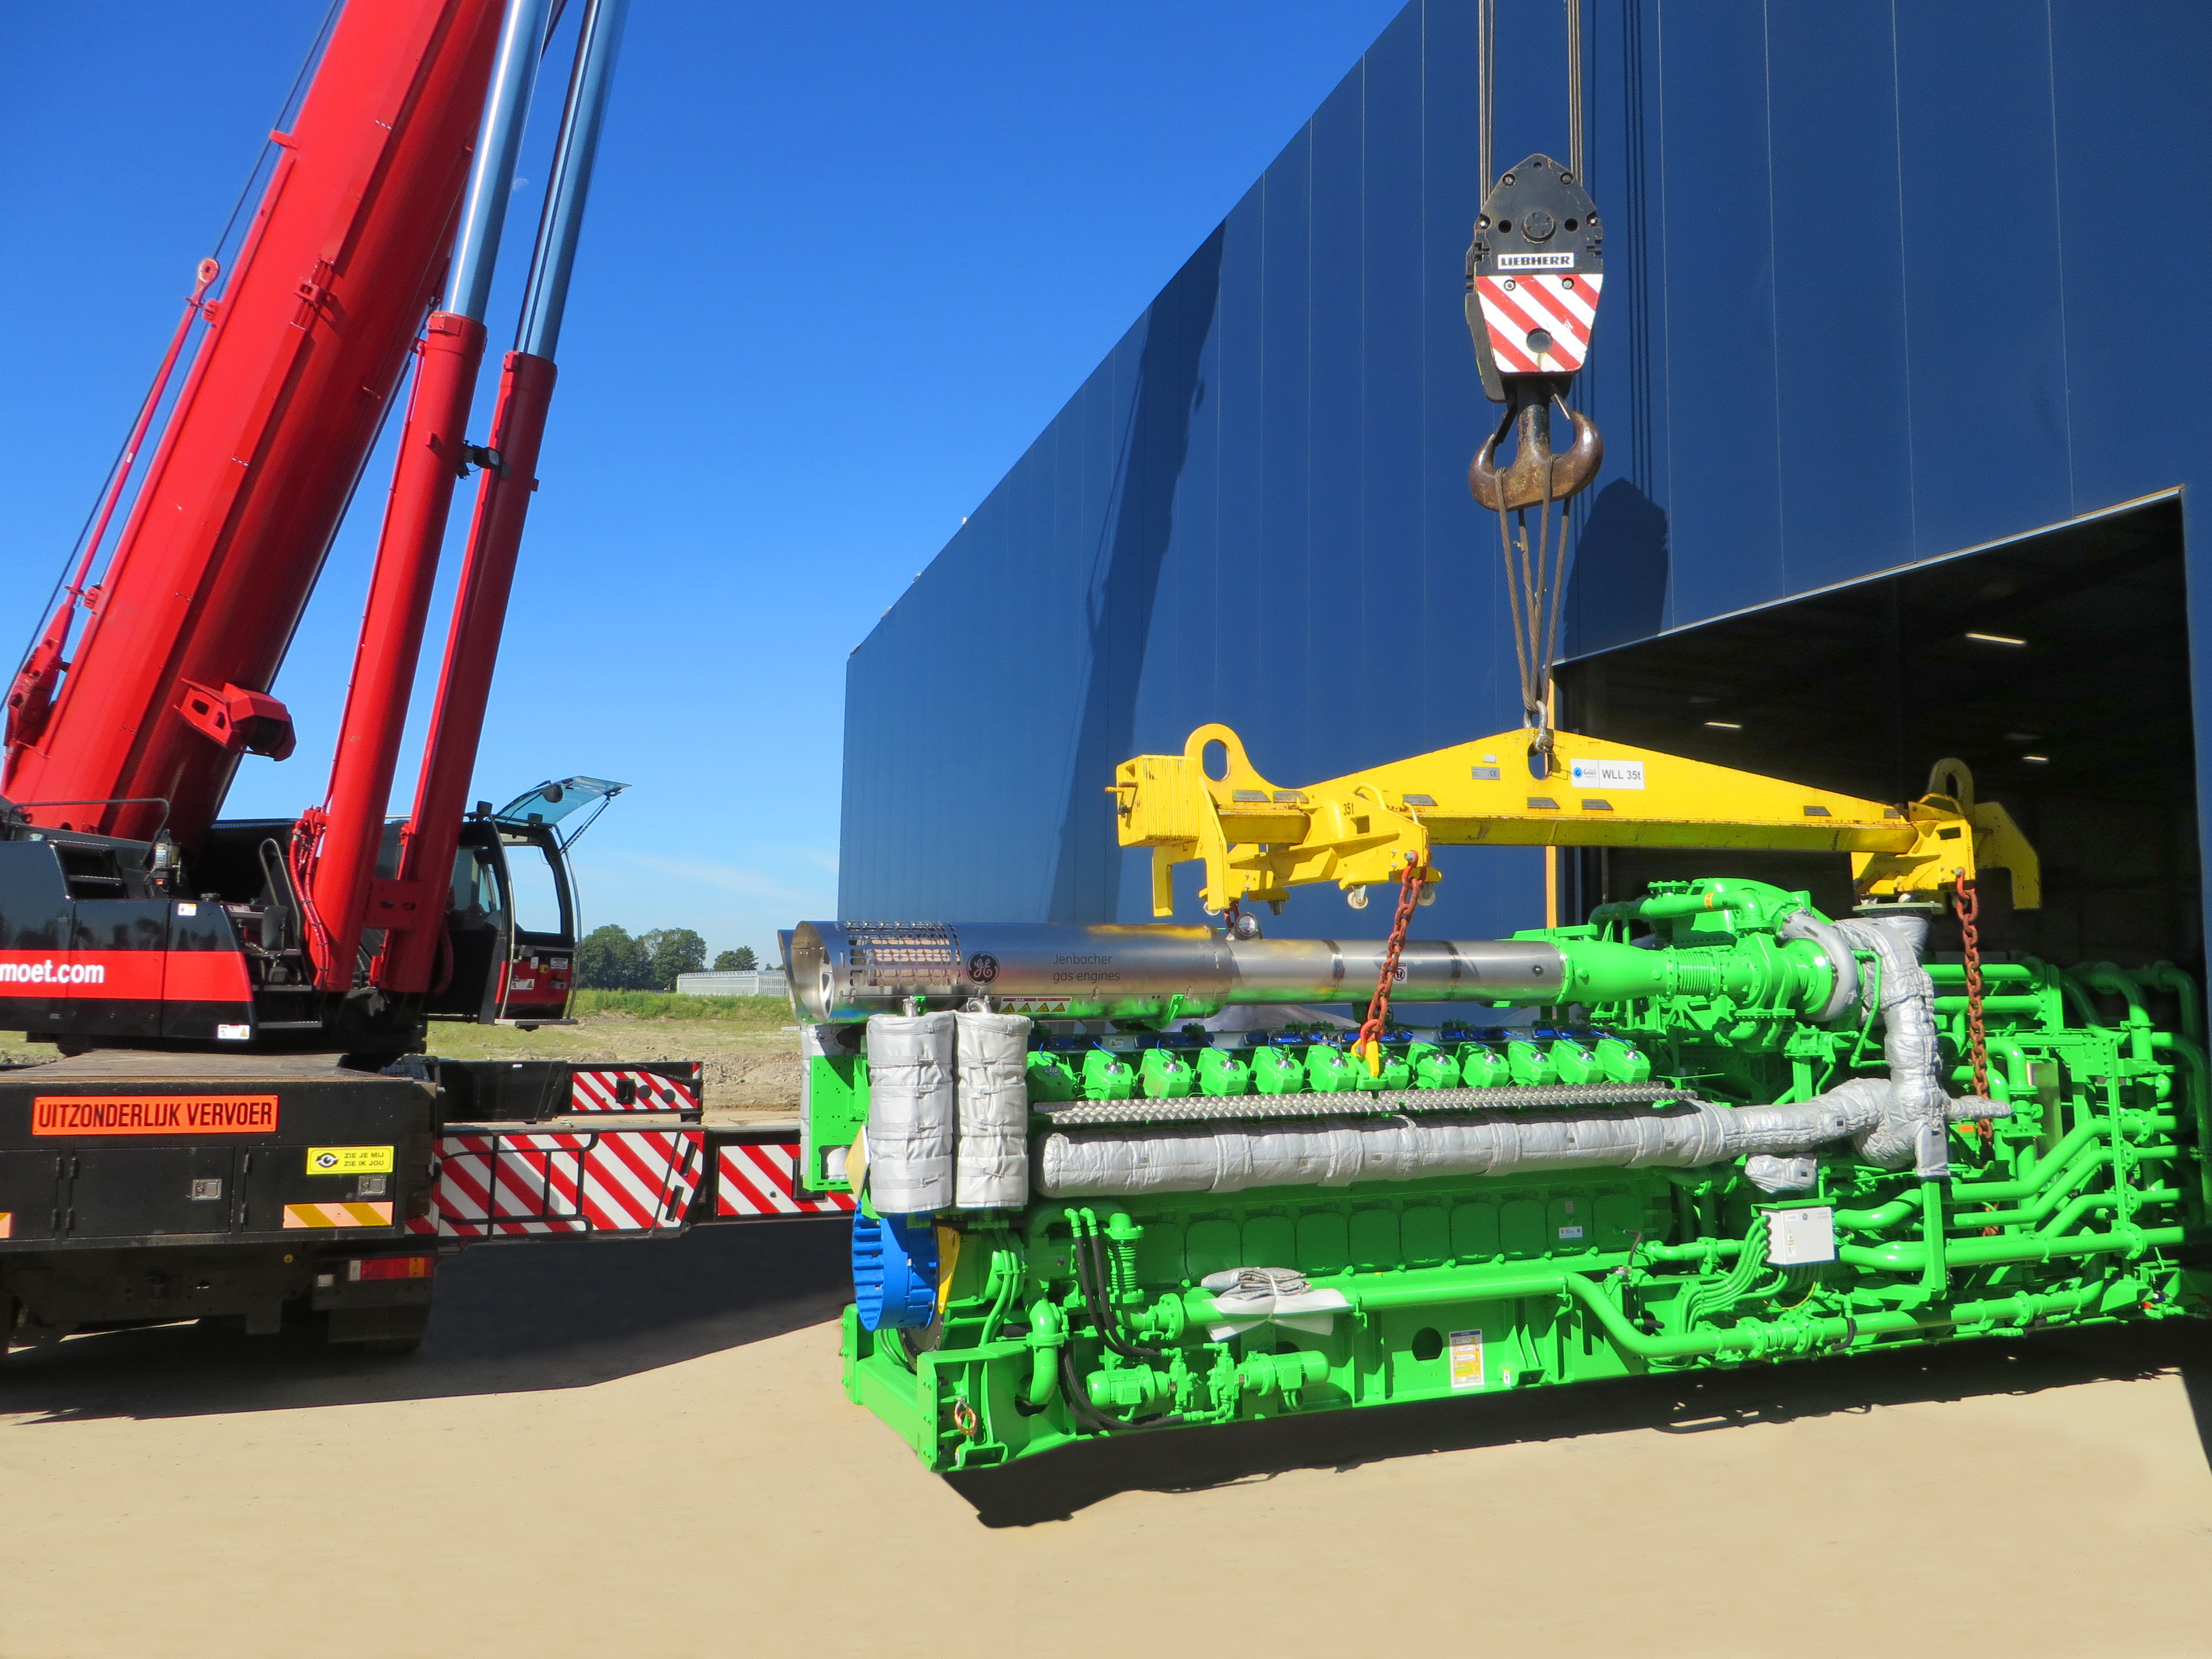 GE to Provide Its Jenbacher Gas Engine Greenhouse Technology and